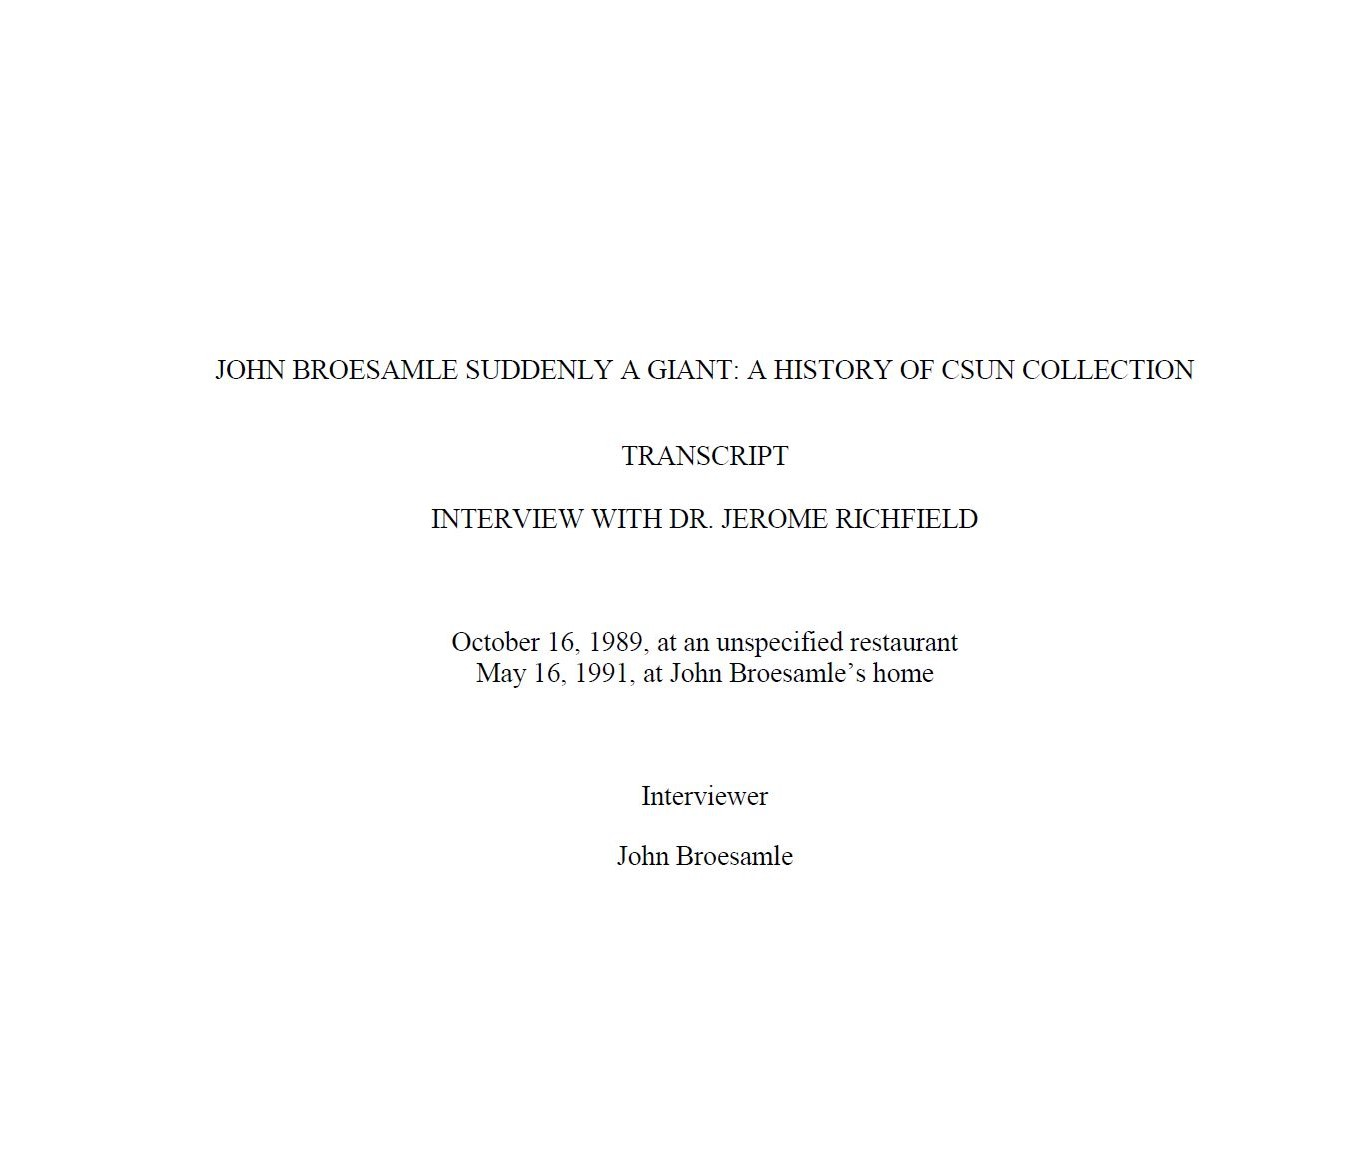 Cover for Dr. Jerome Richfield transcript